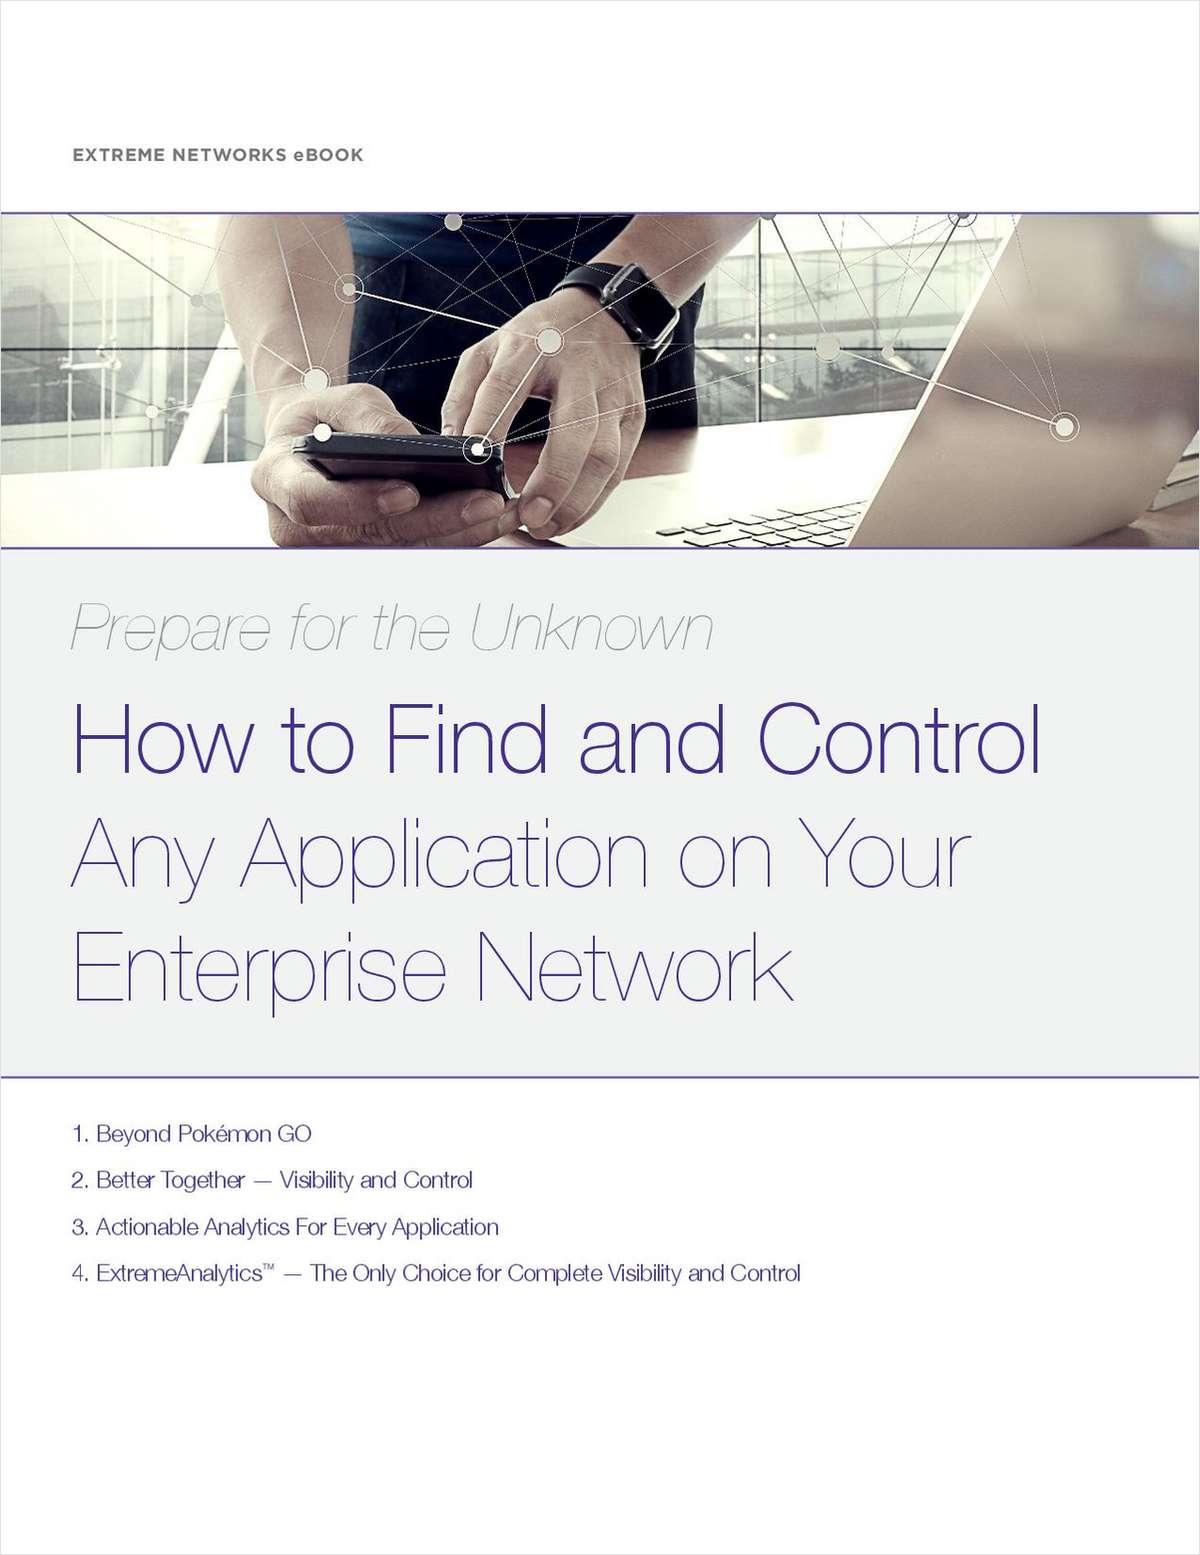 Prepare for the Unknown: How to Find and Control Any Application on Your Enterprise Network